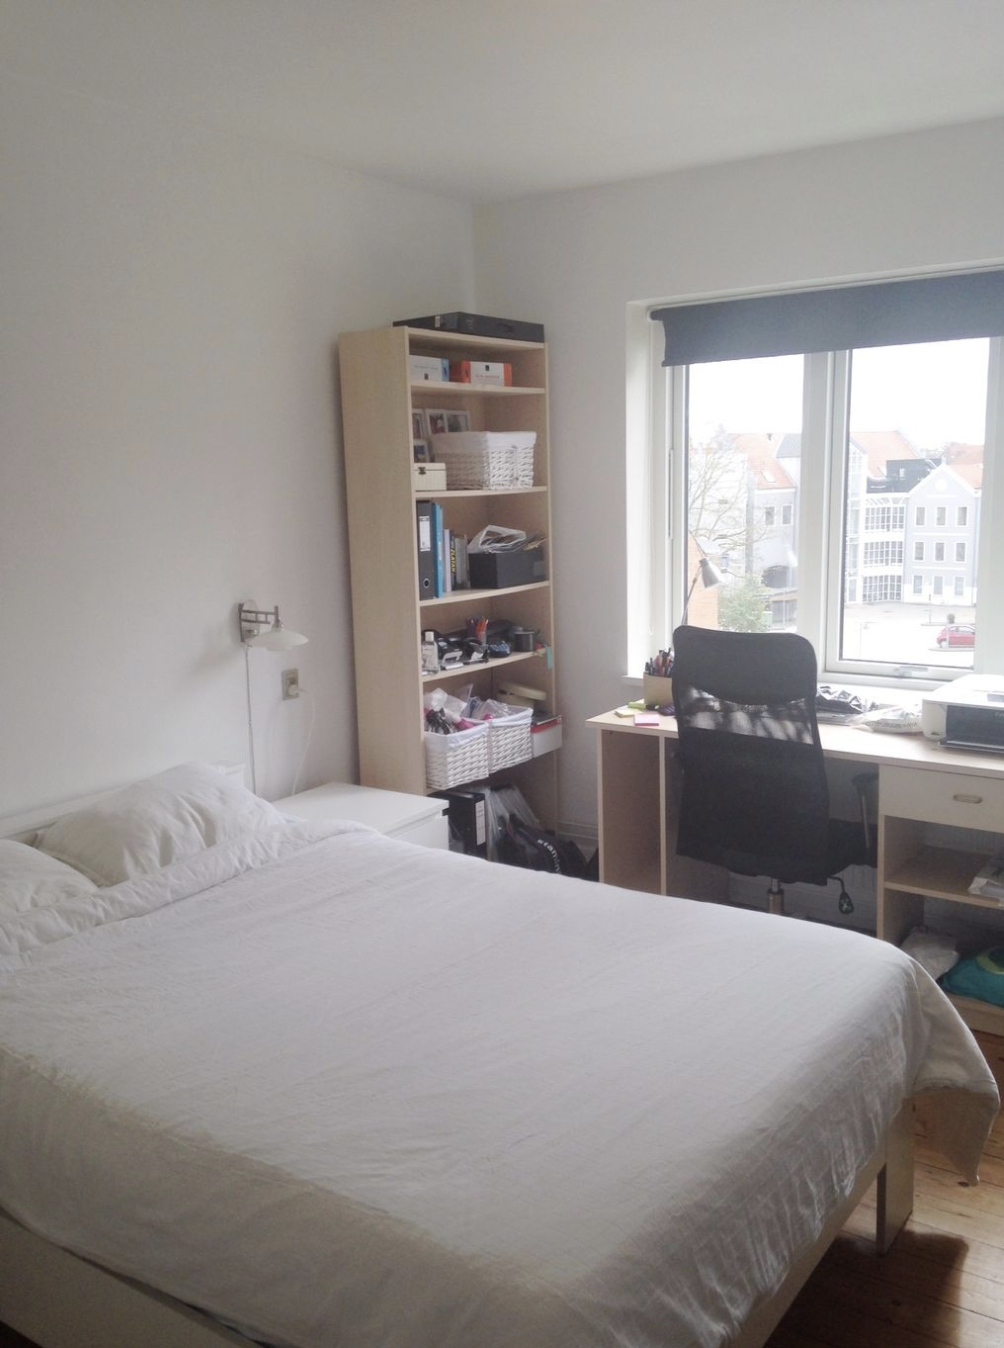 Cozy apartment at Falen, Odense